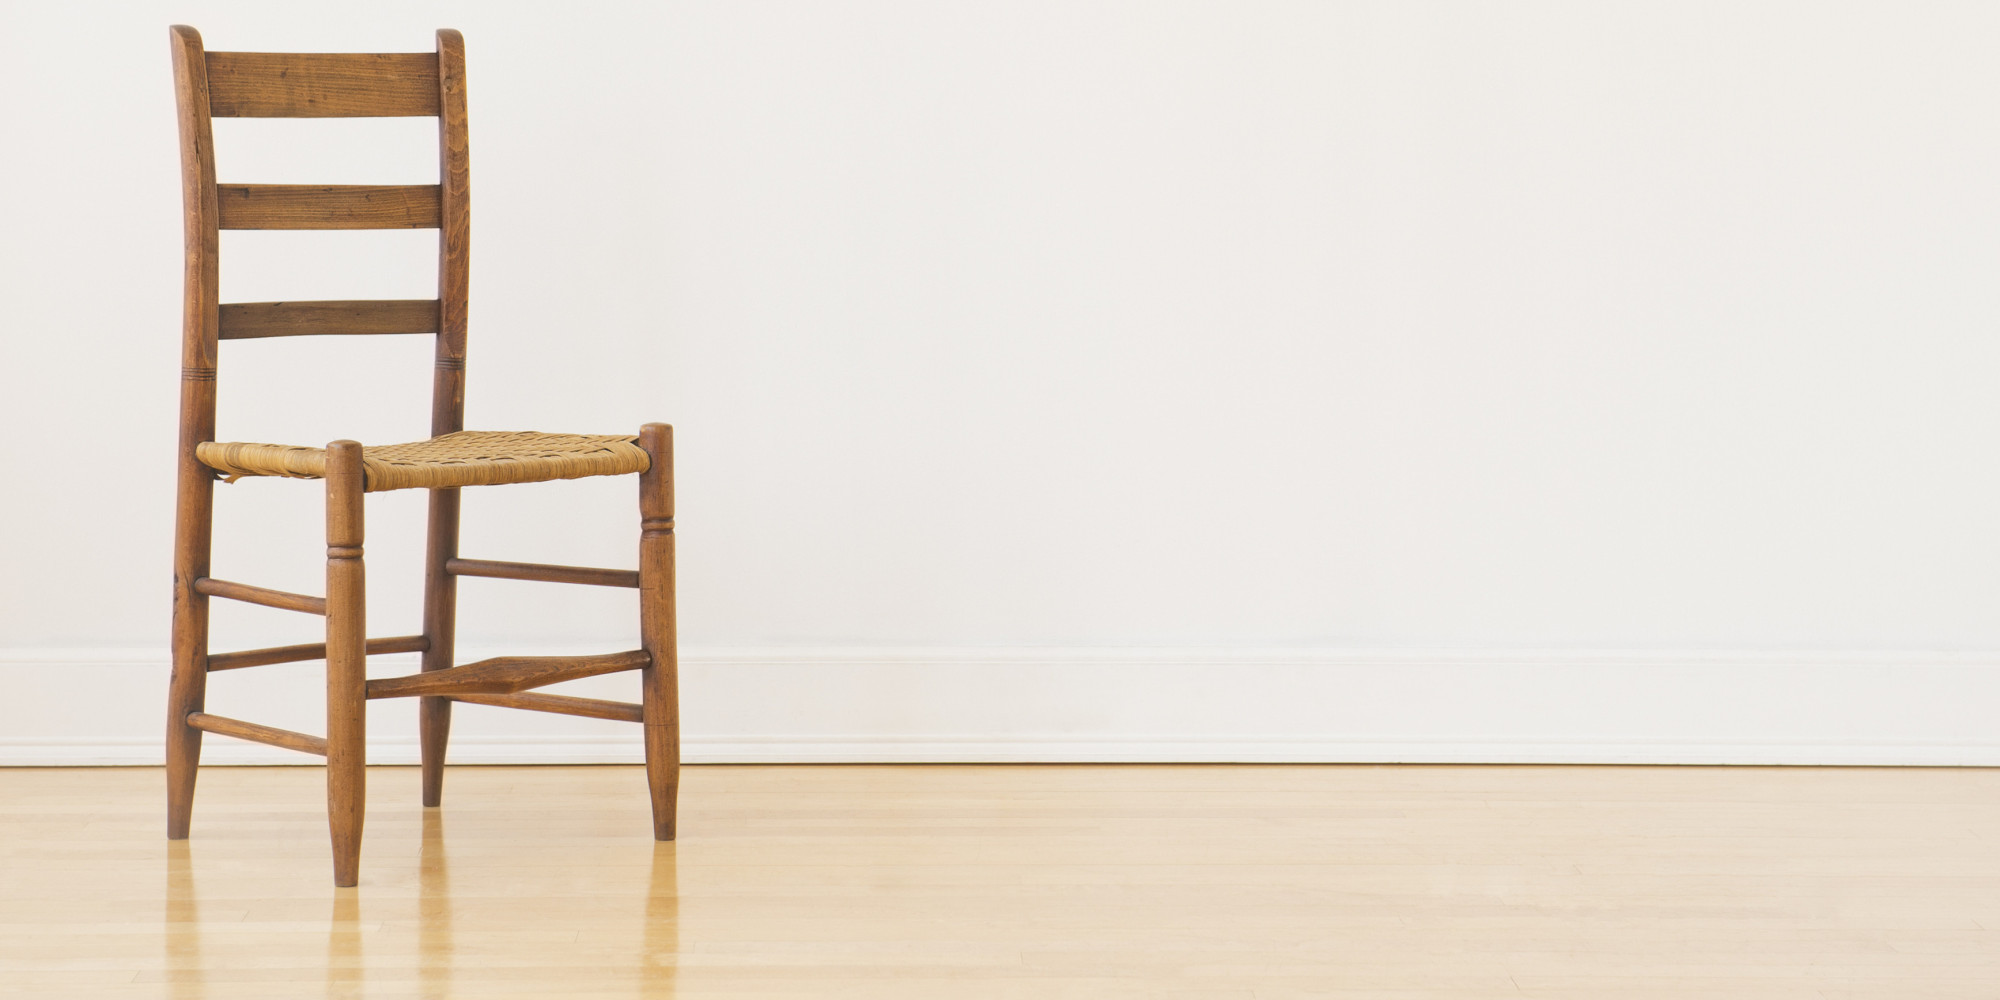 Why There Will Always Be An Empty Chair